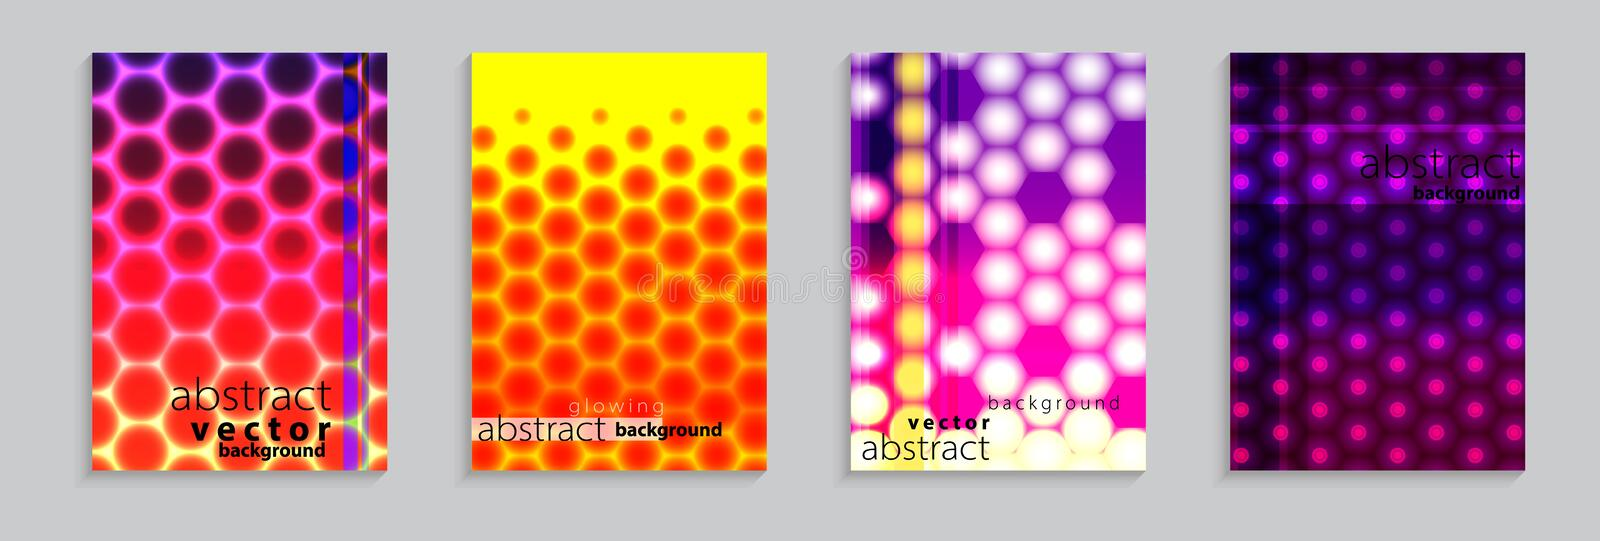 Vector illustration of bright color abstract pattern background with halftone motif for minimal dynamic cover design stock illustration